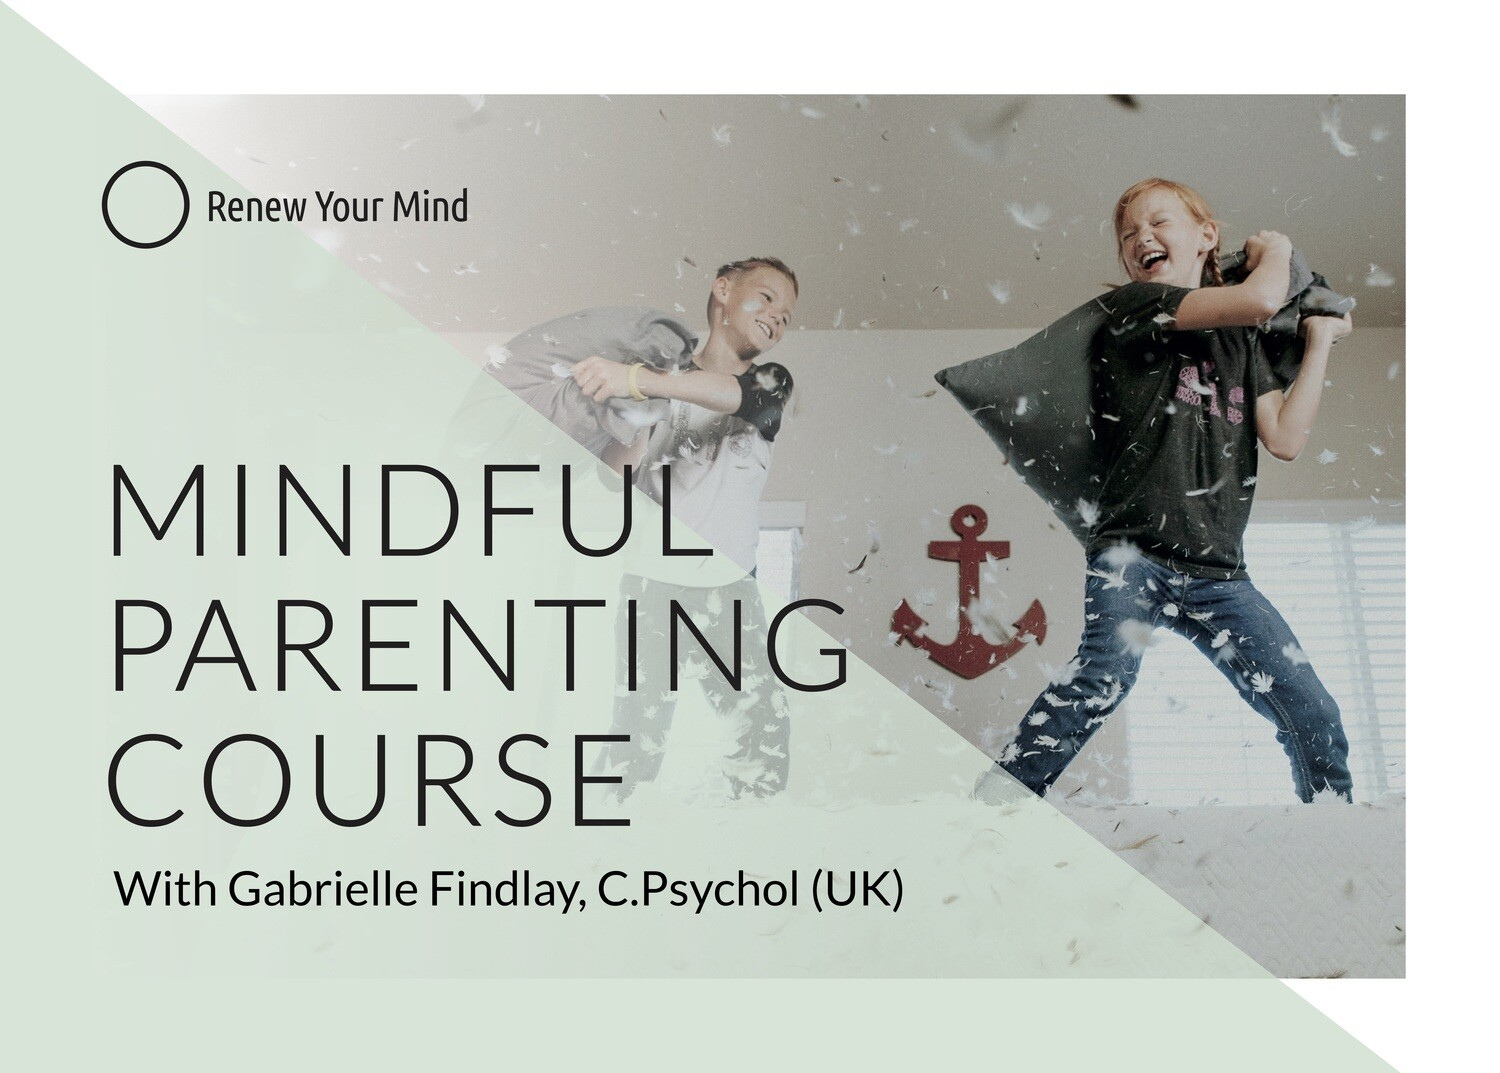 North Shore (Murray Bay) Mindful Parenting course: 6 session course starting 19 August '21